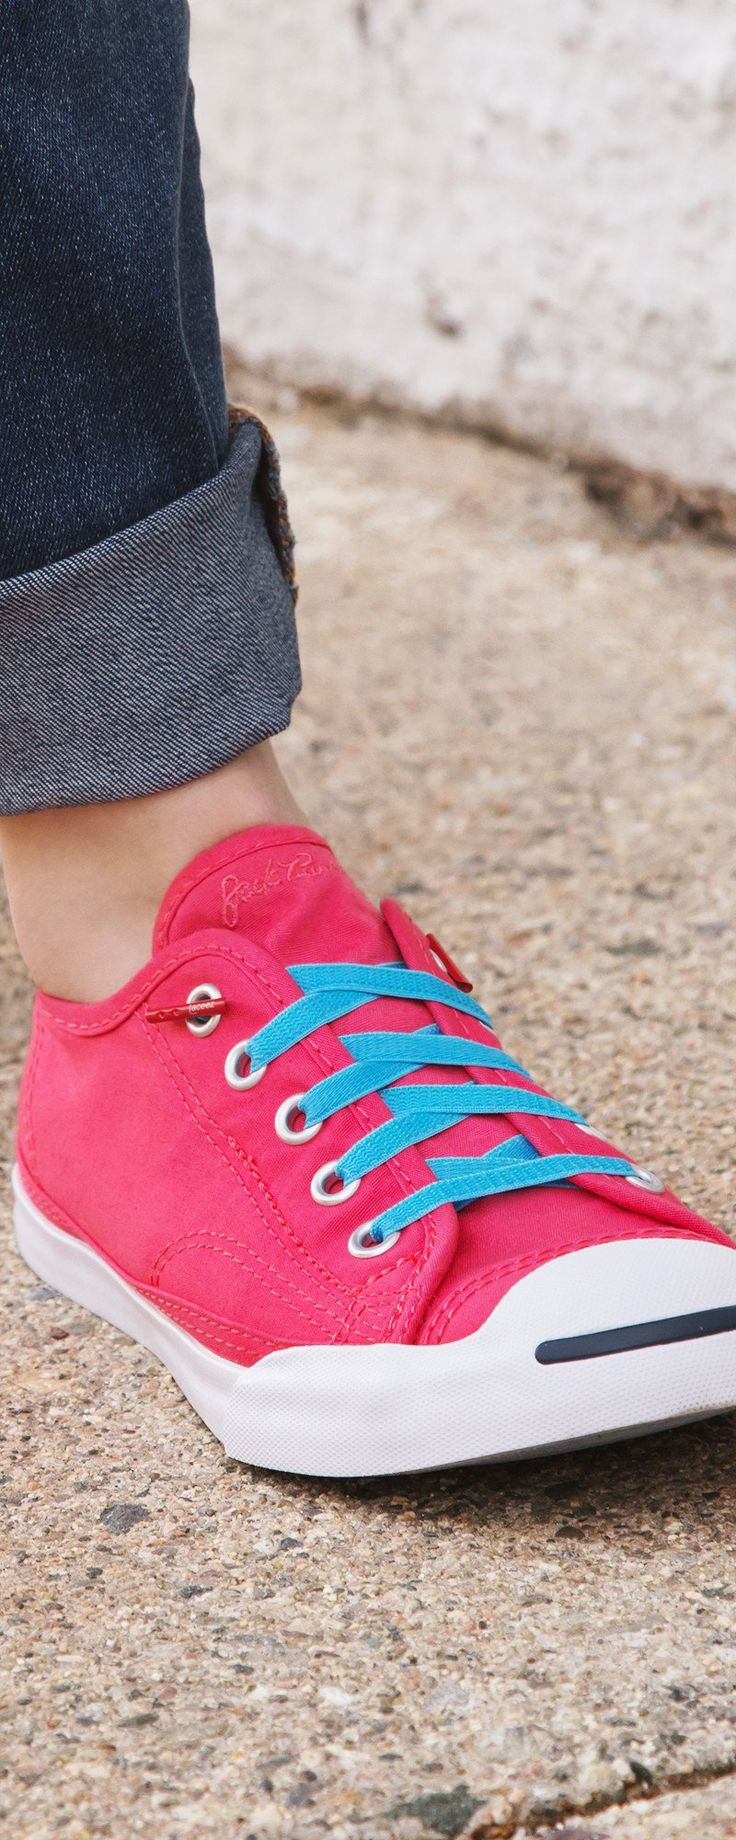 Replace your laces with this stretchy, no-tie solution, discovered by The Grommet. It makes pulling on shoes easy and leaves no tangled knots or dangling laces.